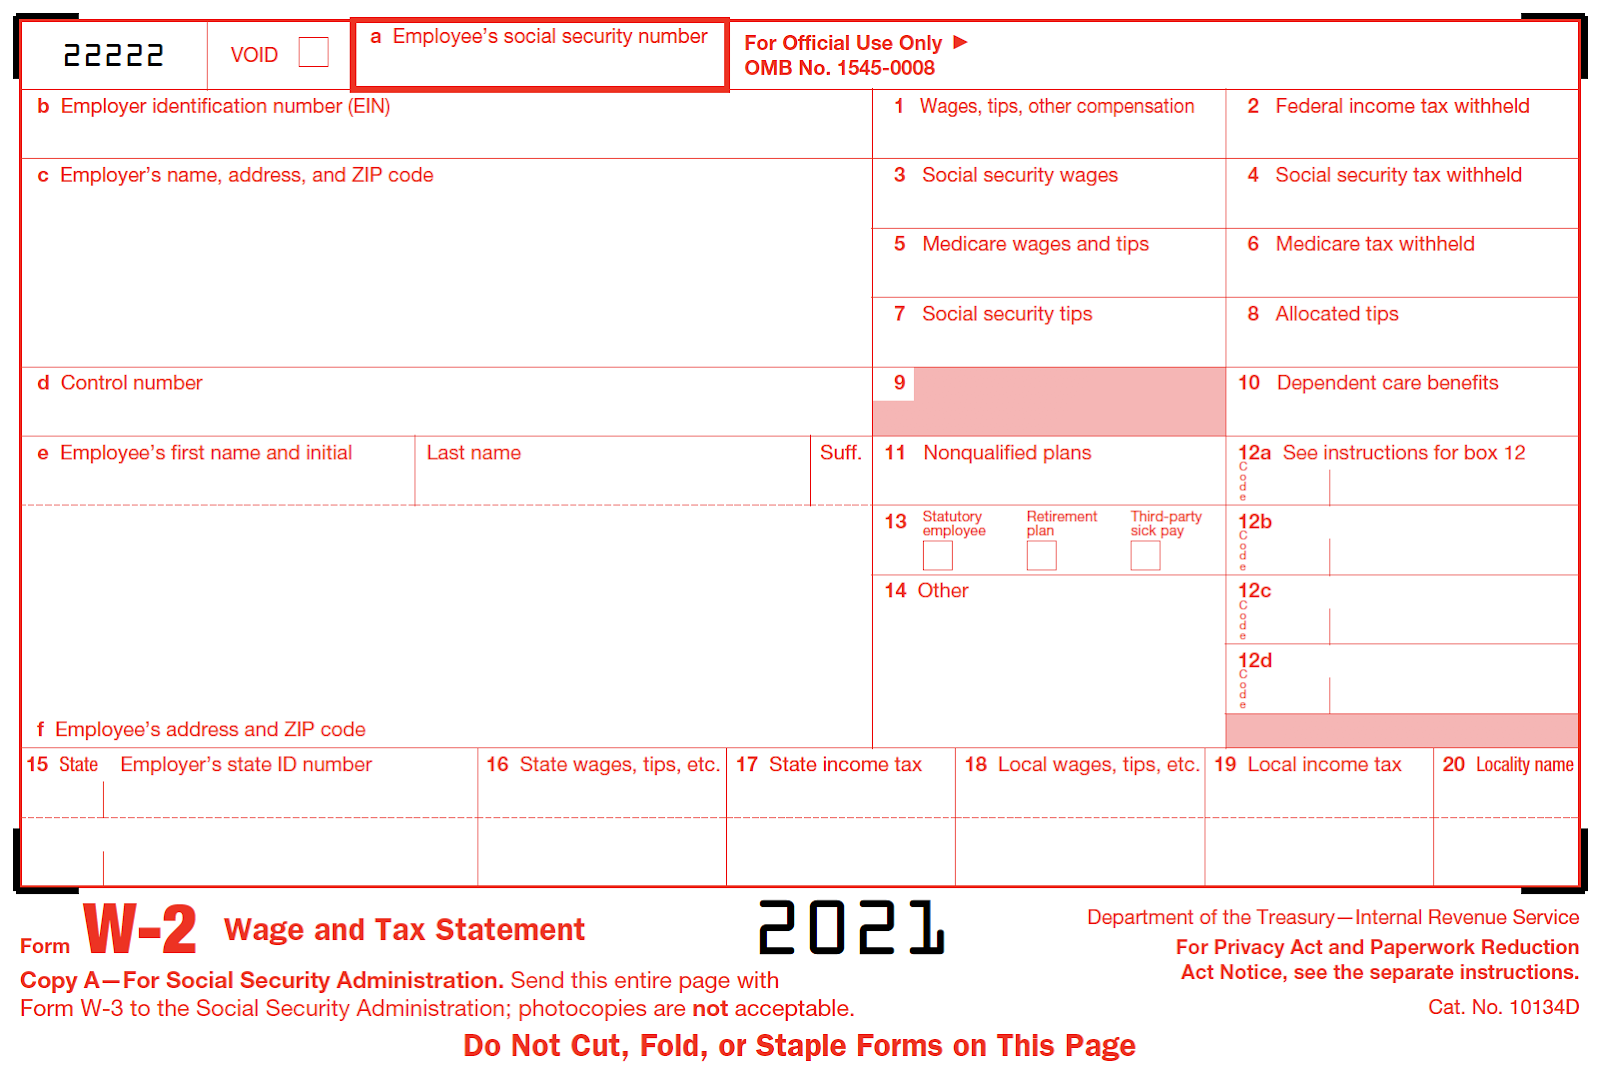 Photo of a blank form W-2.